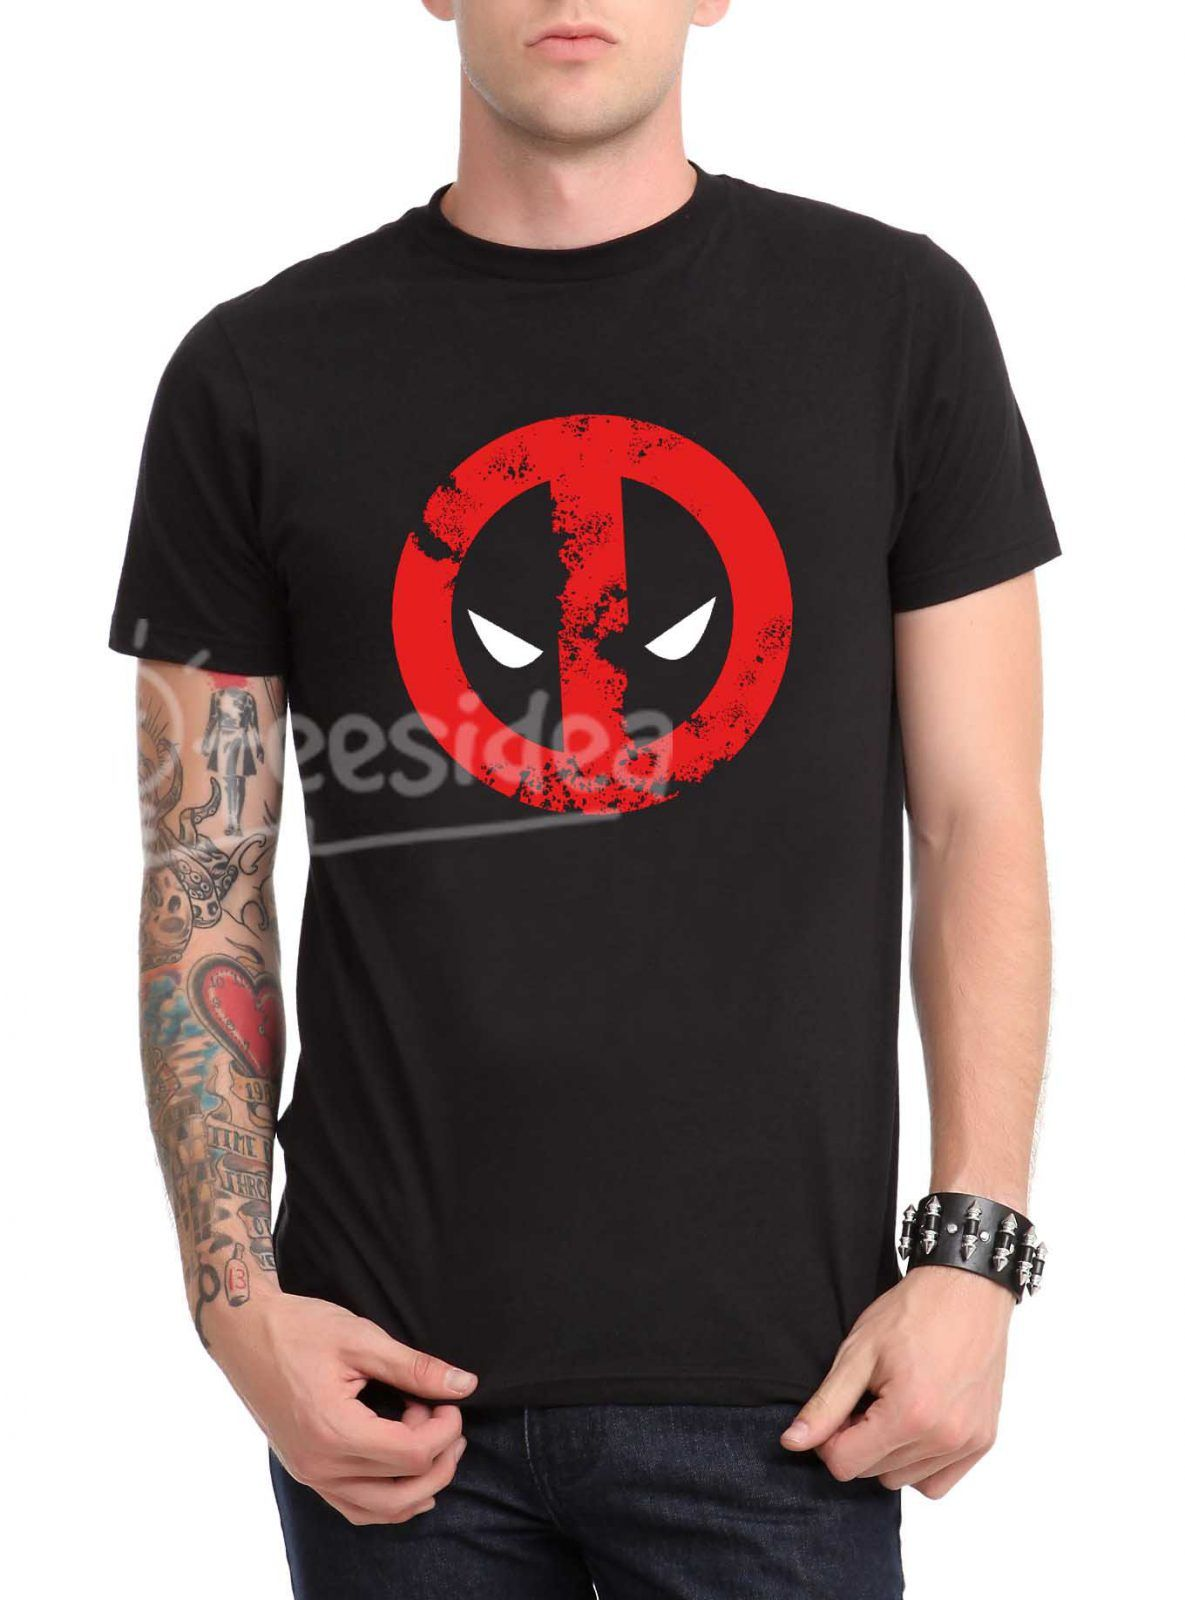 Deadpool face Unisex Adult T Shirt - Get 10% Off!!! - Use Coupon Code 'TEES10'